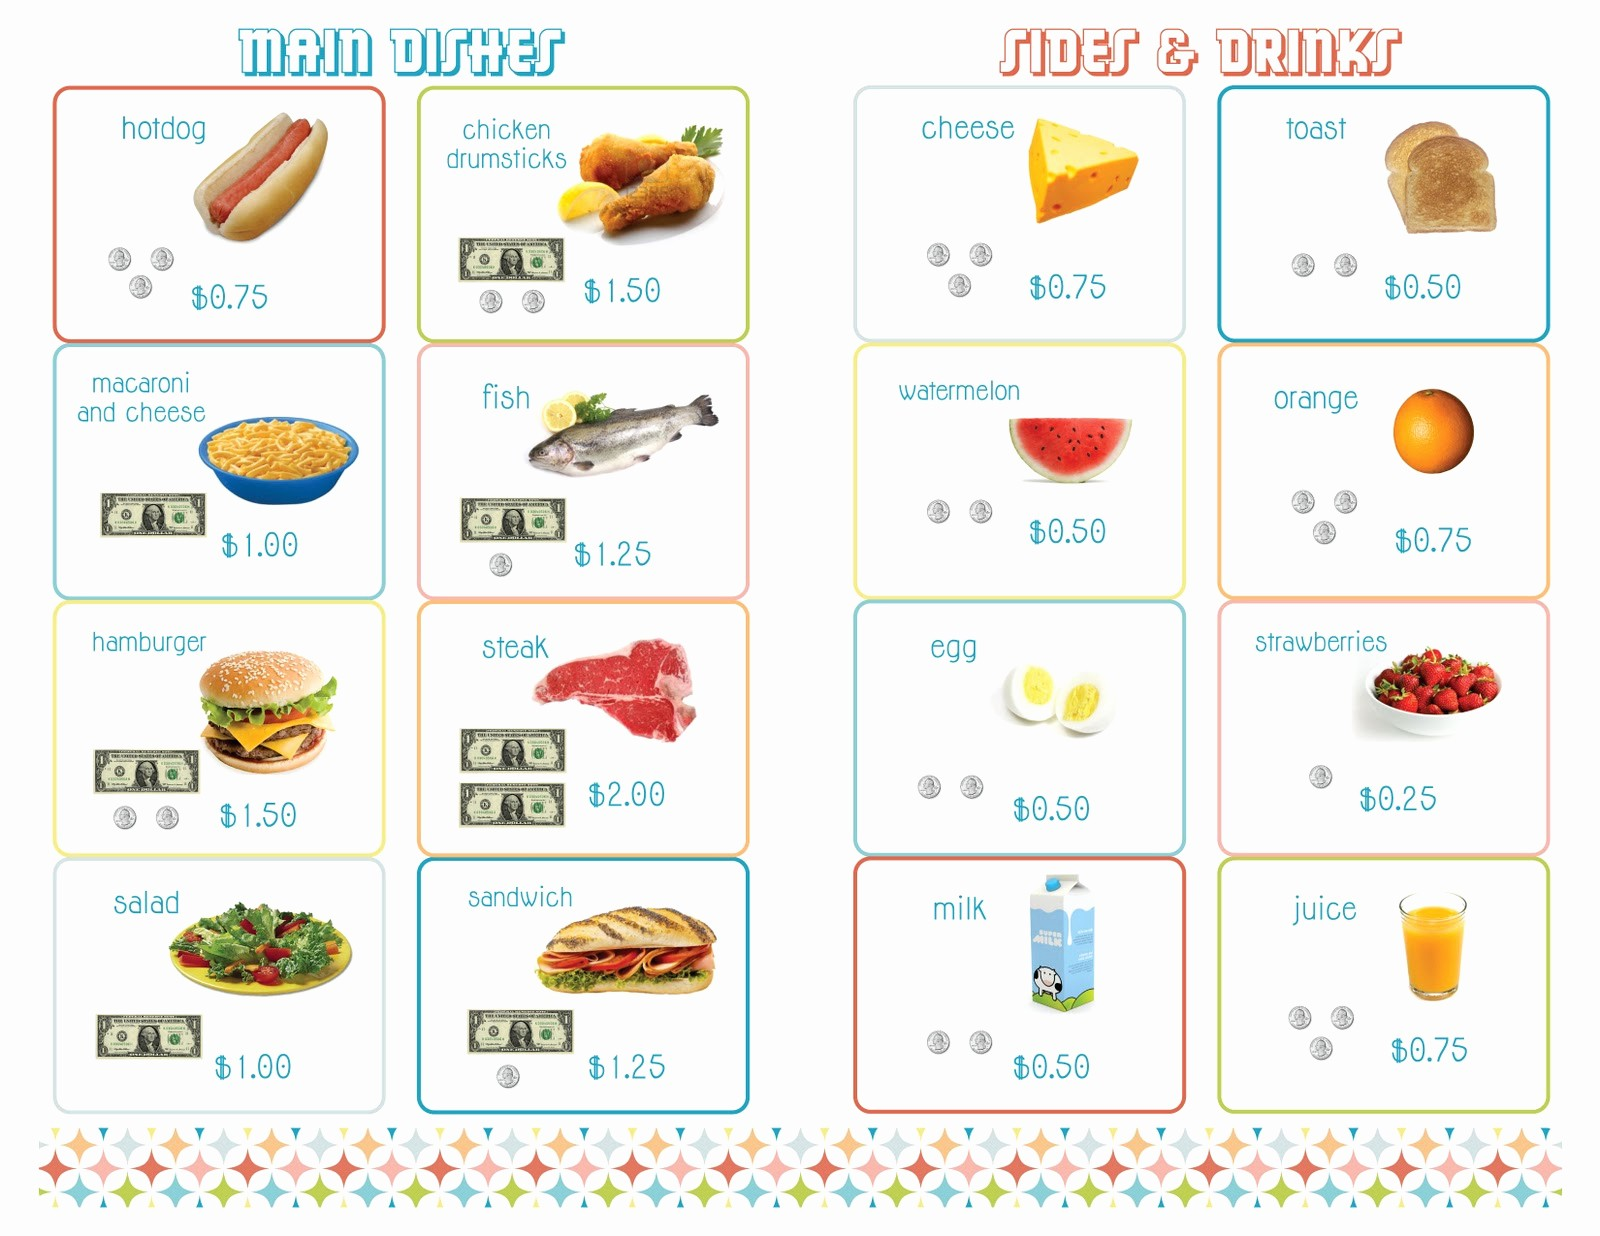 Free Printable Restaurant Menu Templates Lovely Amy J Delightful Blog Printable Menus for Playing Restaurant